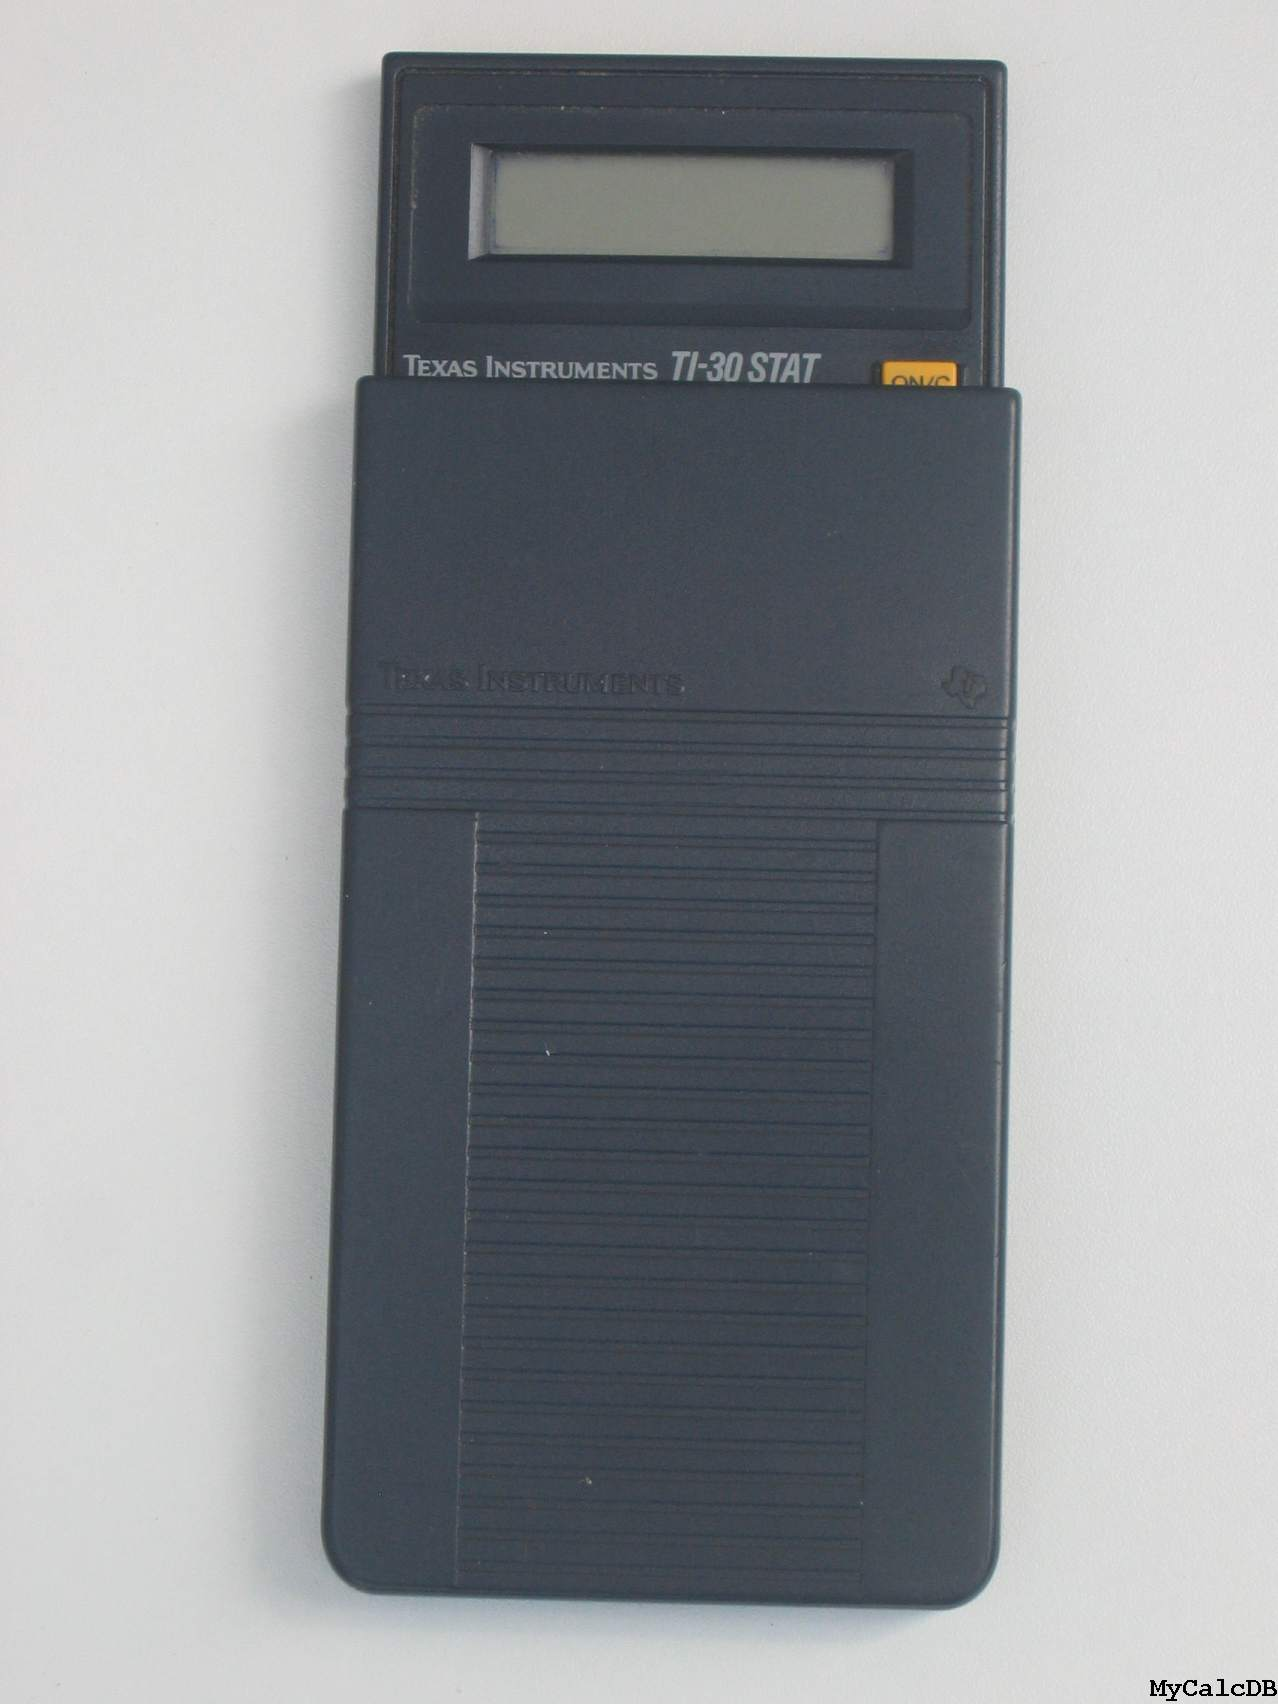 Texas Instruments TI-30 STAT